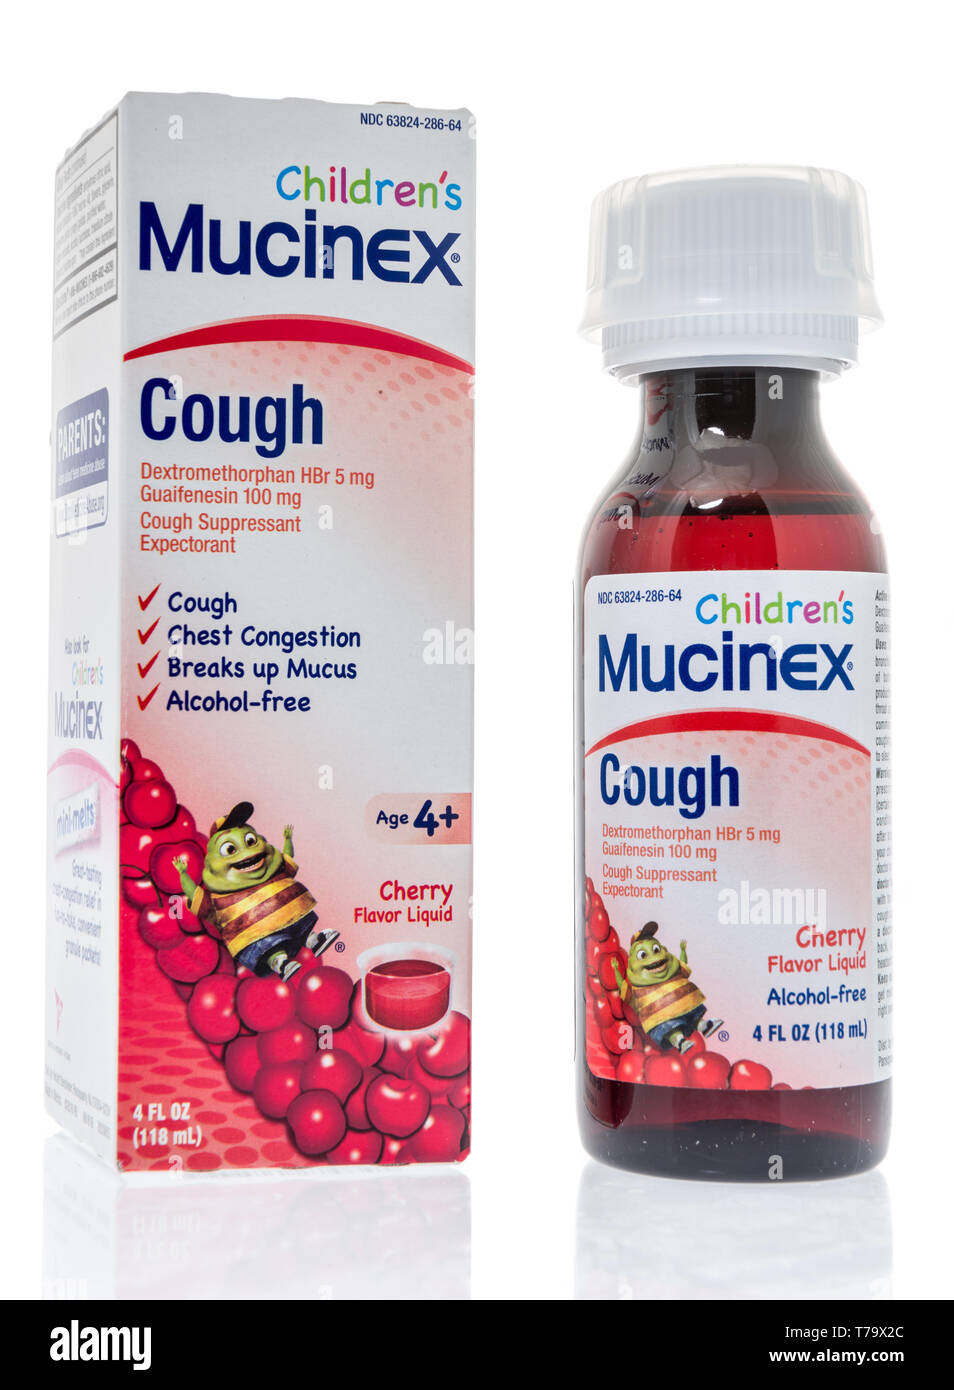 Winneconne, WI - 3 May 2019:  A package of Childrens Mucinex cough medicine on an isolated background. - Stock Image